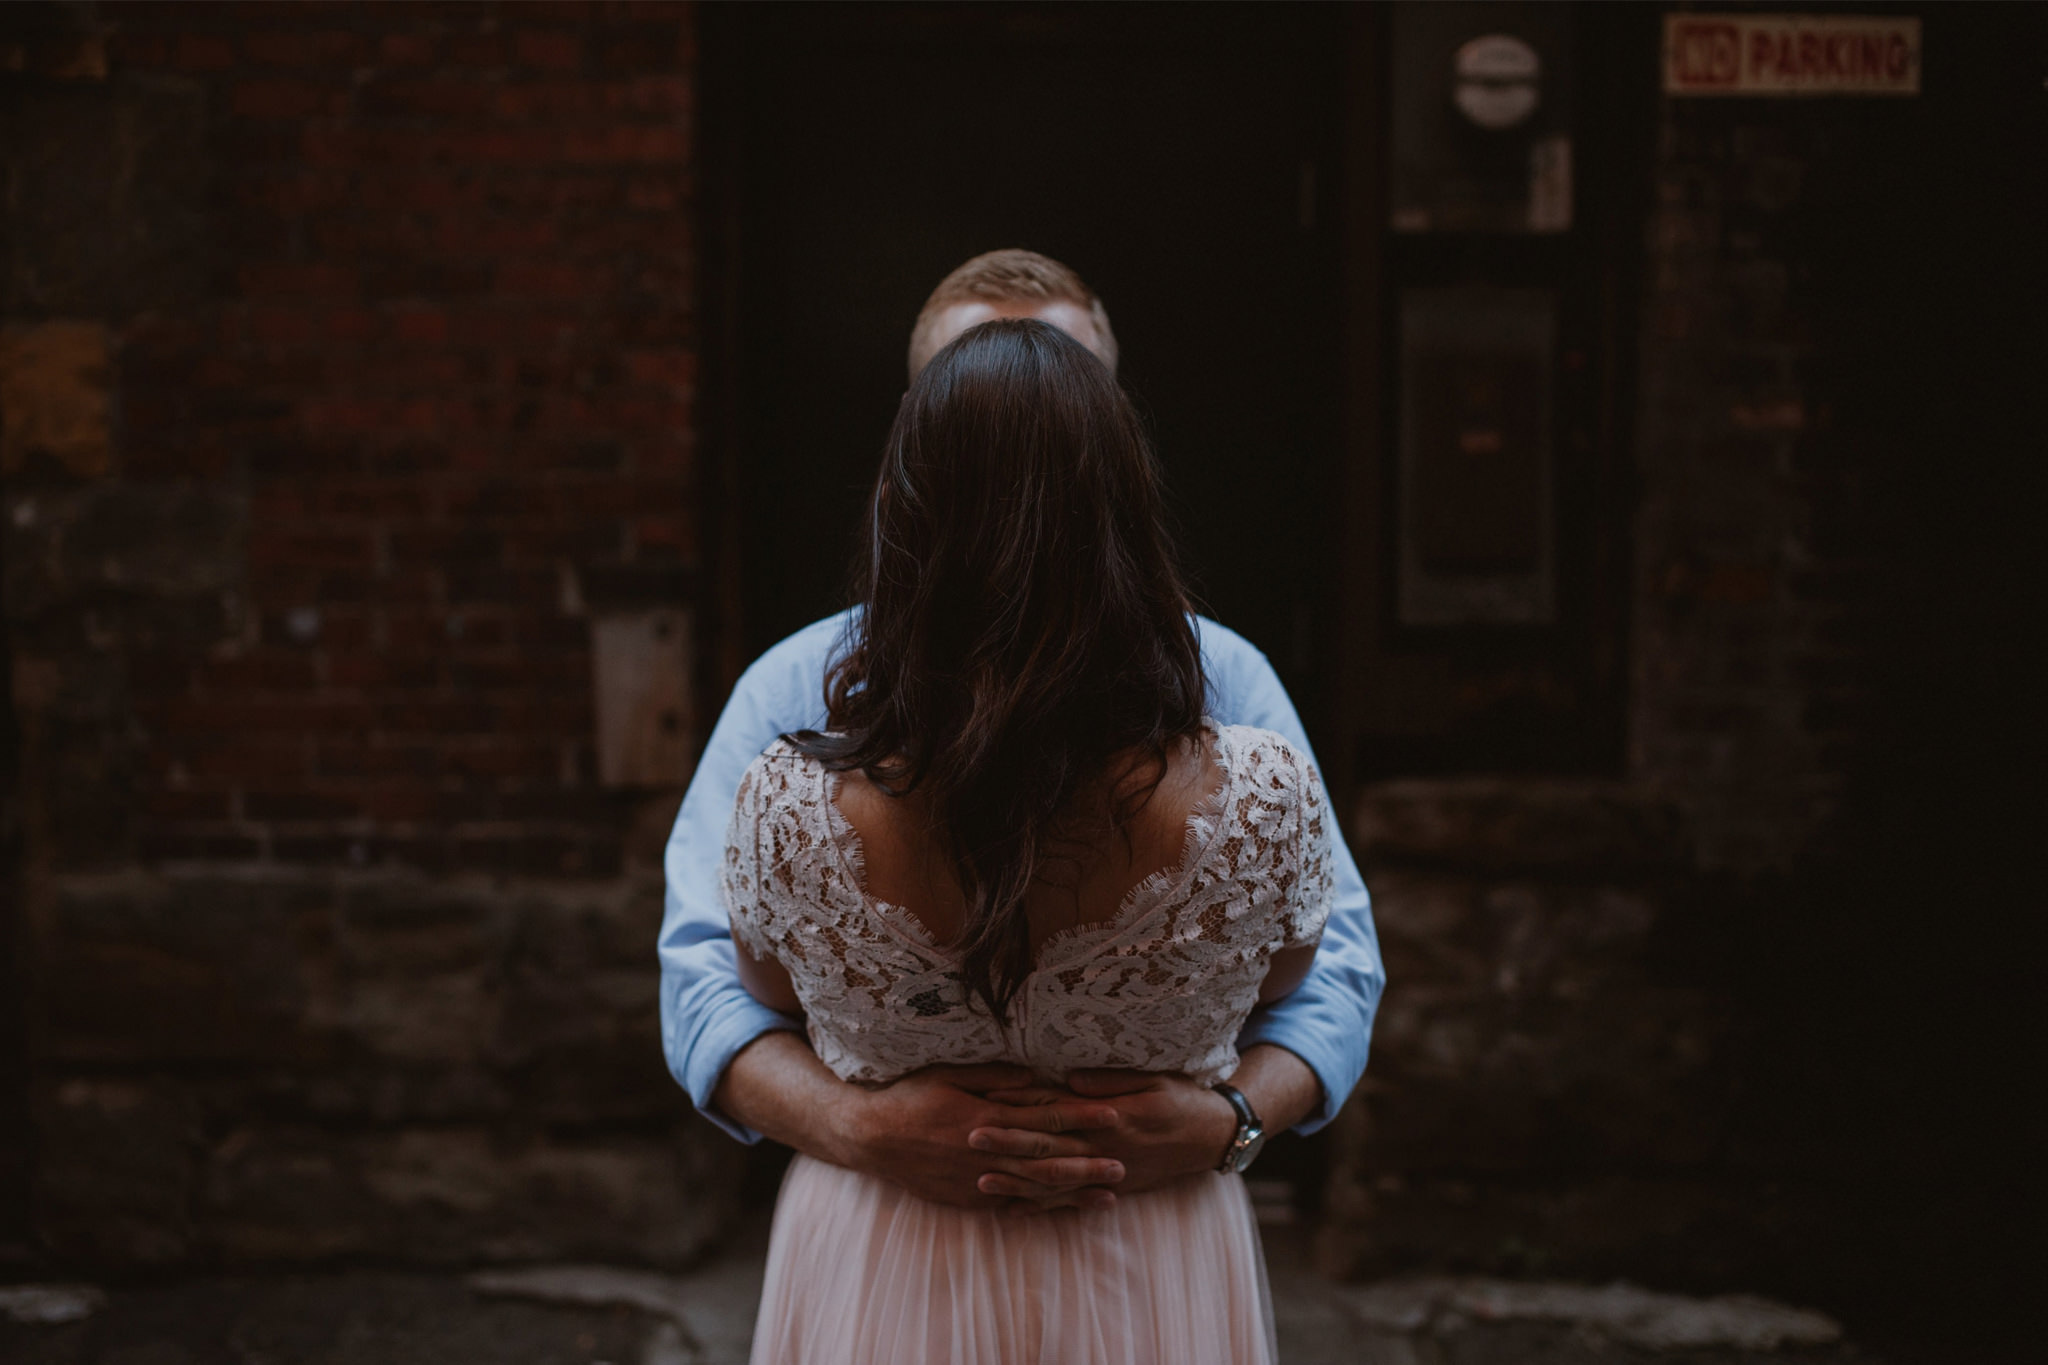 An engaged couple embrace in a Seattle alley